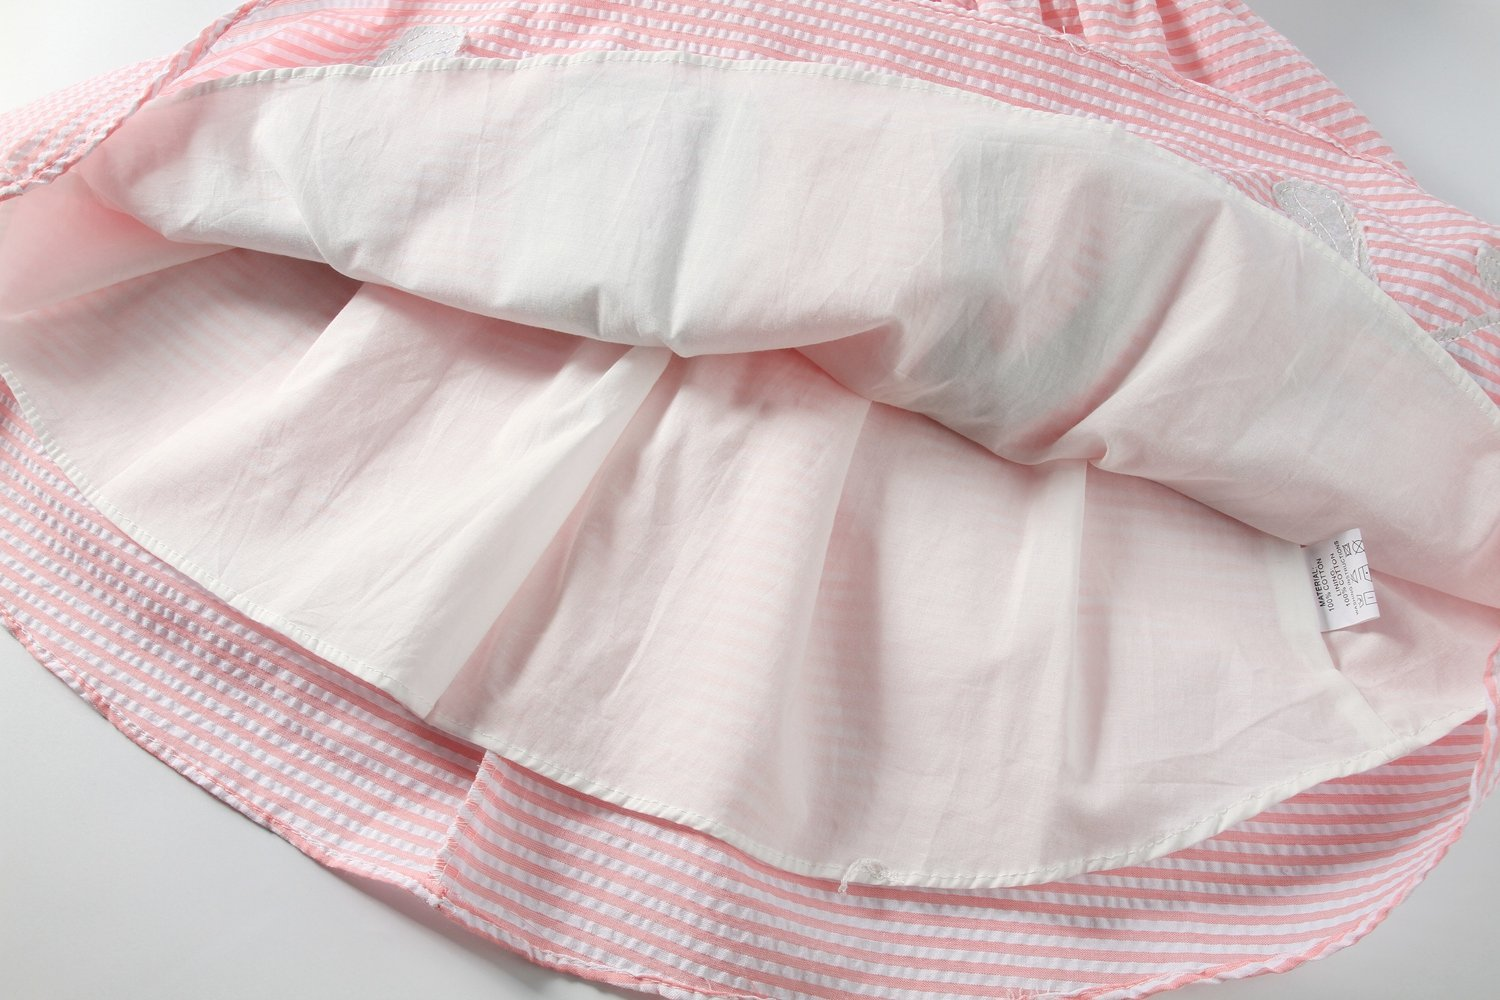 Sharequeen Striped Cotton Big Girls Summer Dress Dog Bird Cat Embroidery Pink Color A090(Pink Stripe, 6 Years) by Sharequeen (Image #5)